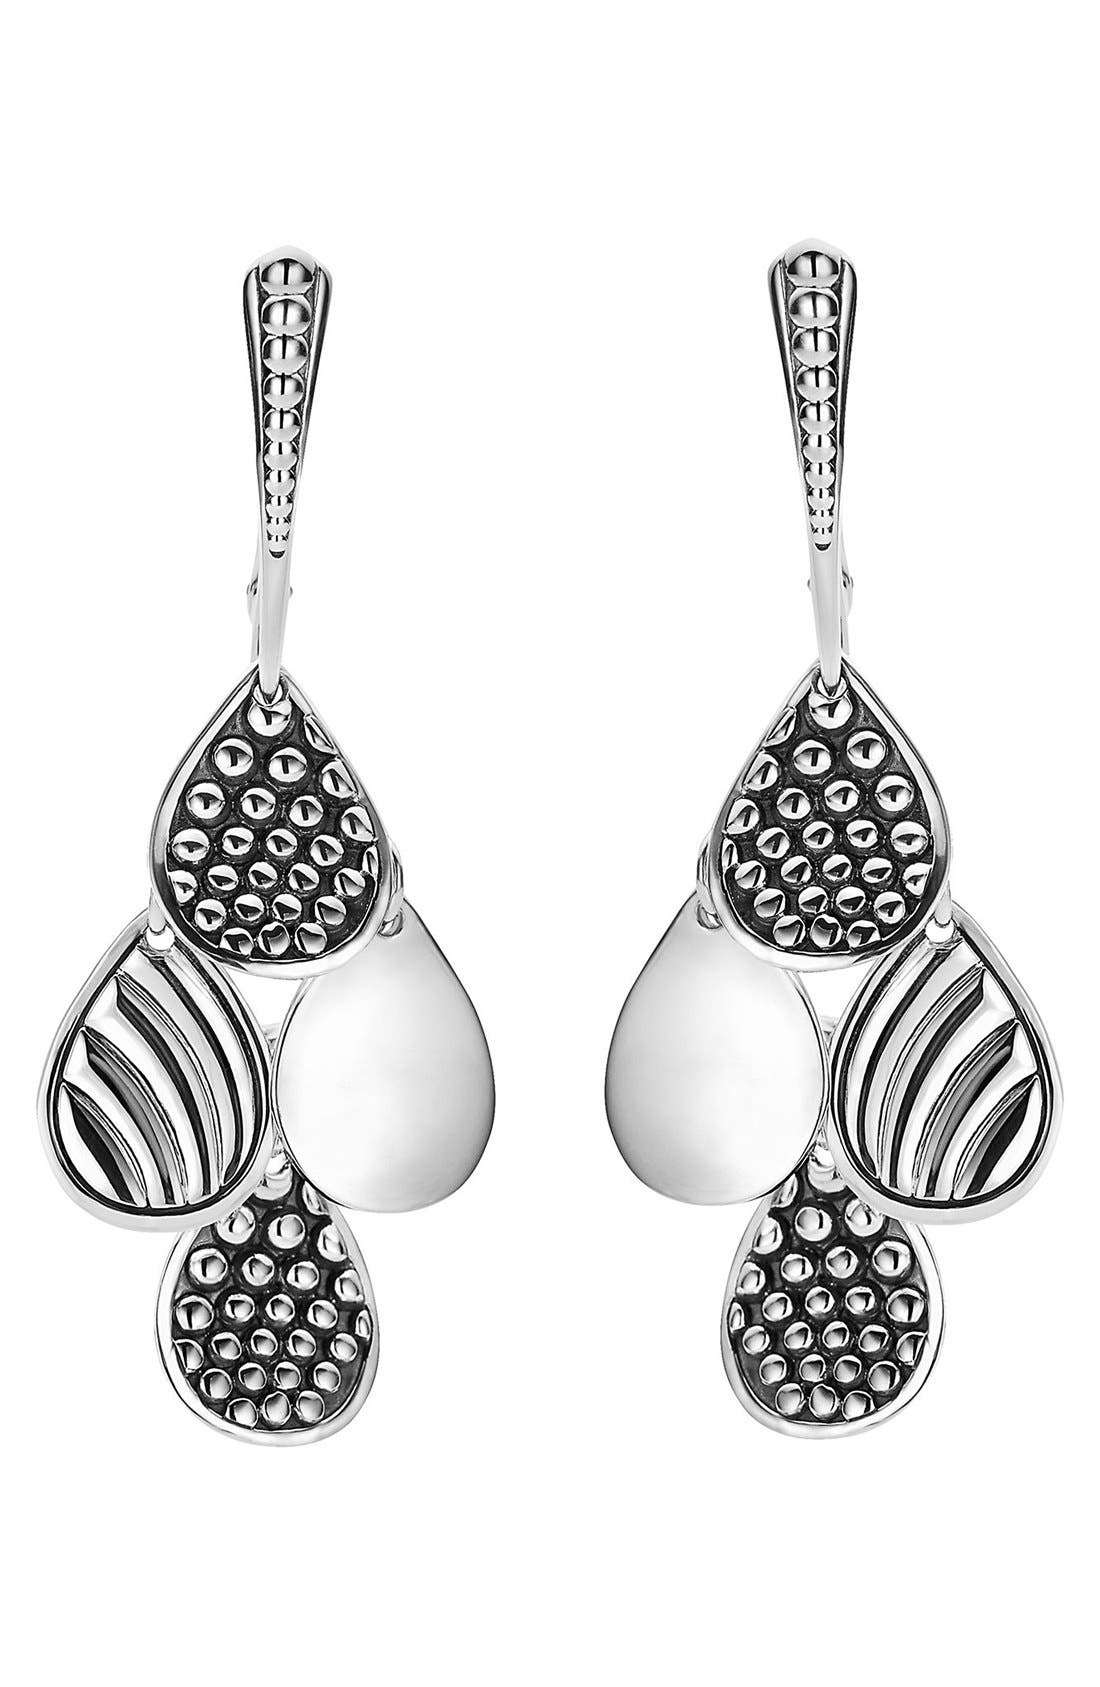 Caviar Tiered Drop Earrings,                             Alternate thumbnail 3, color,